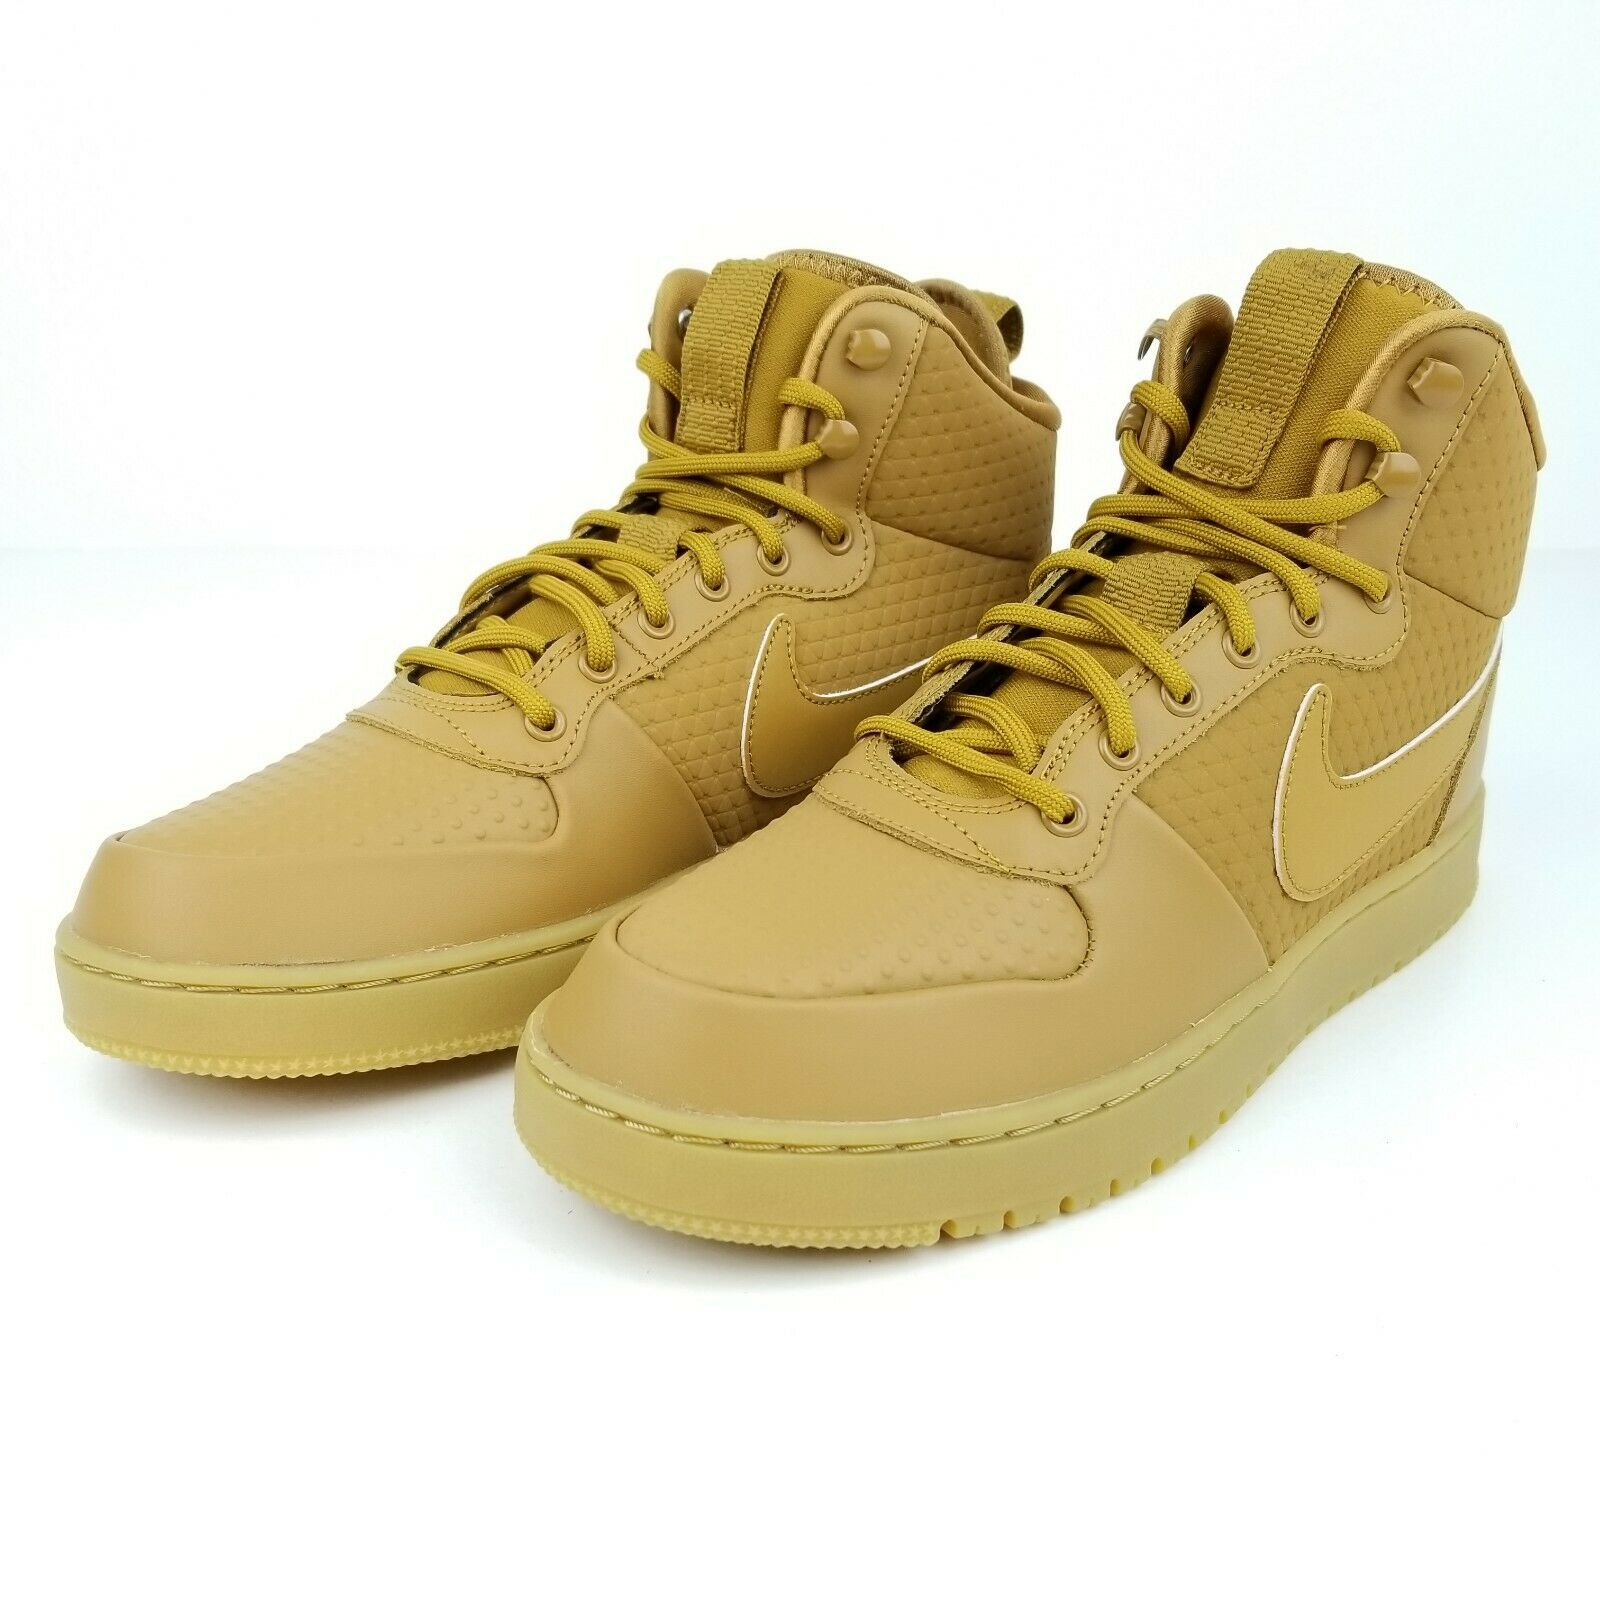 Nike Court Bgoldugh Mid Winter Wheat Tan AA0547 700 Mens Sneakerboot shoes Size